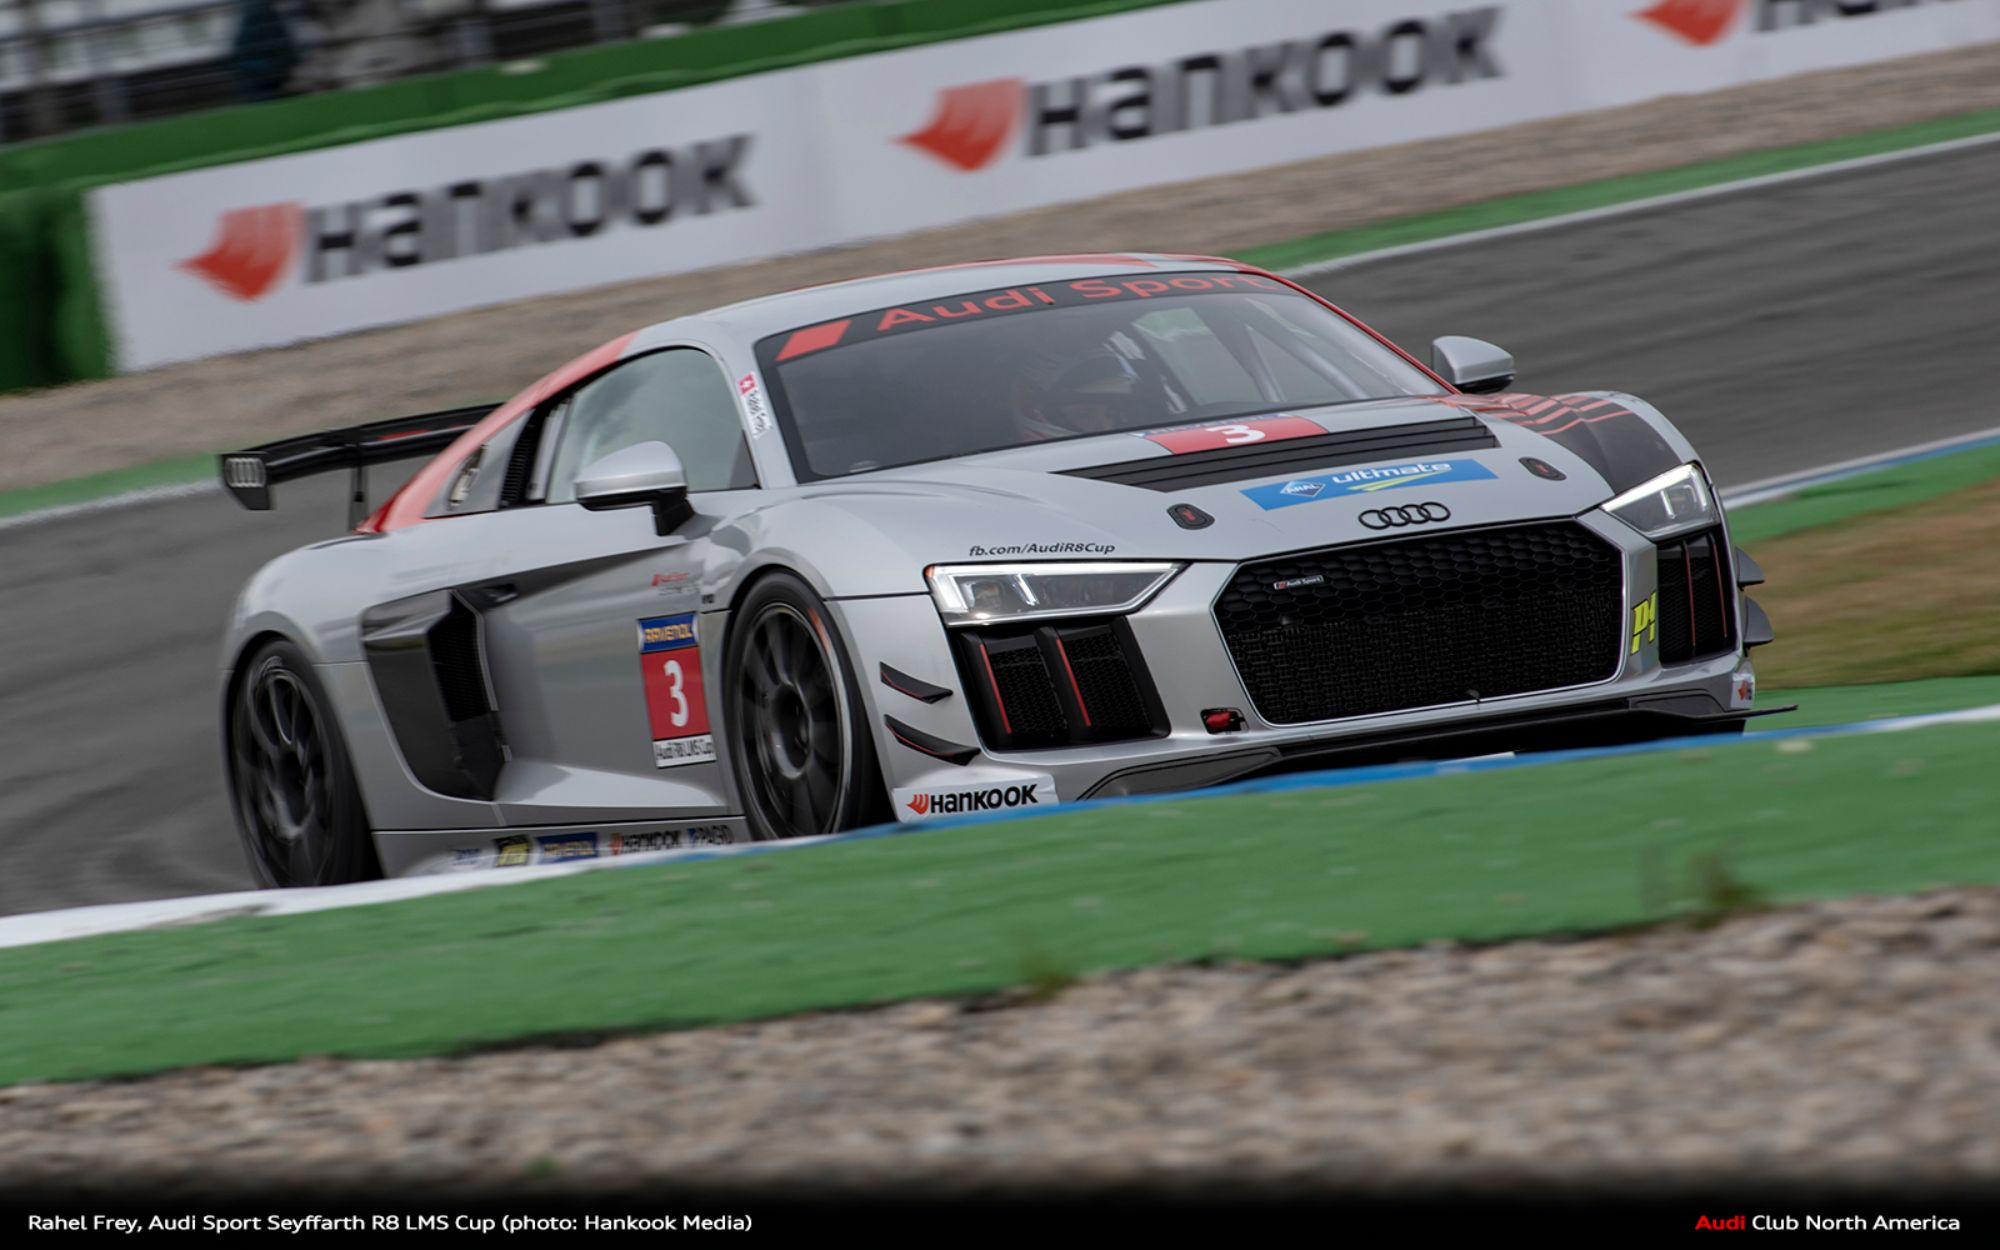 The Audi Sport Seyffahrt R8 LMS Cup Enters Its Second Season with Rahel Frey and the Hankook Race Tyre